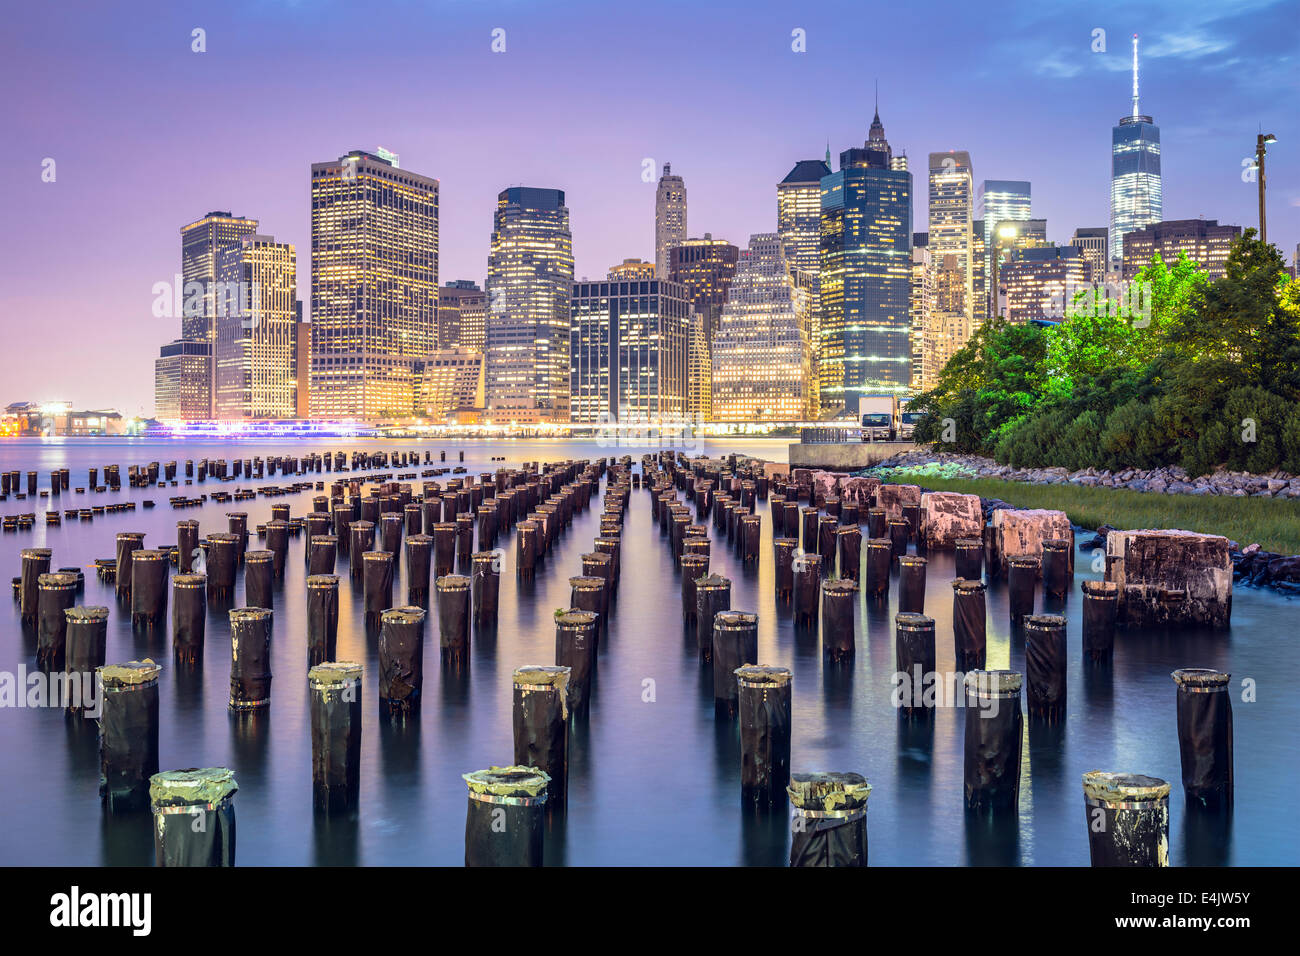 New York City, USA skyline at night. - Stock Image